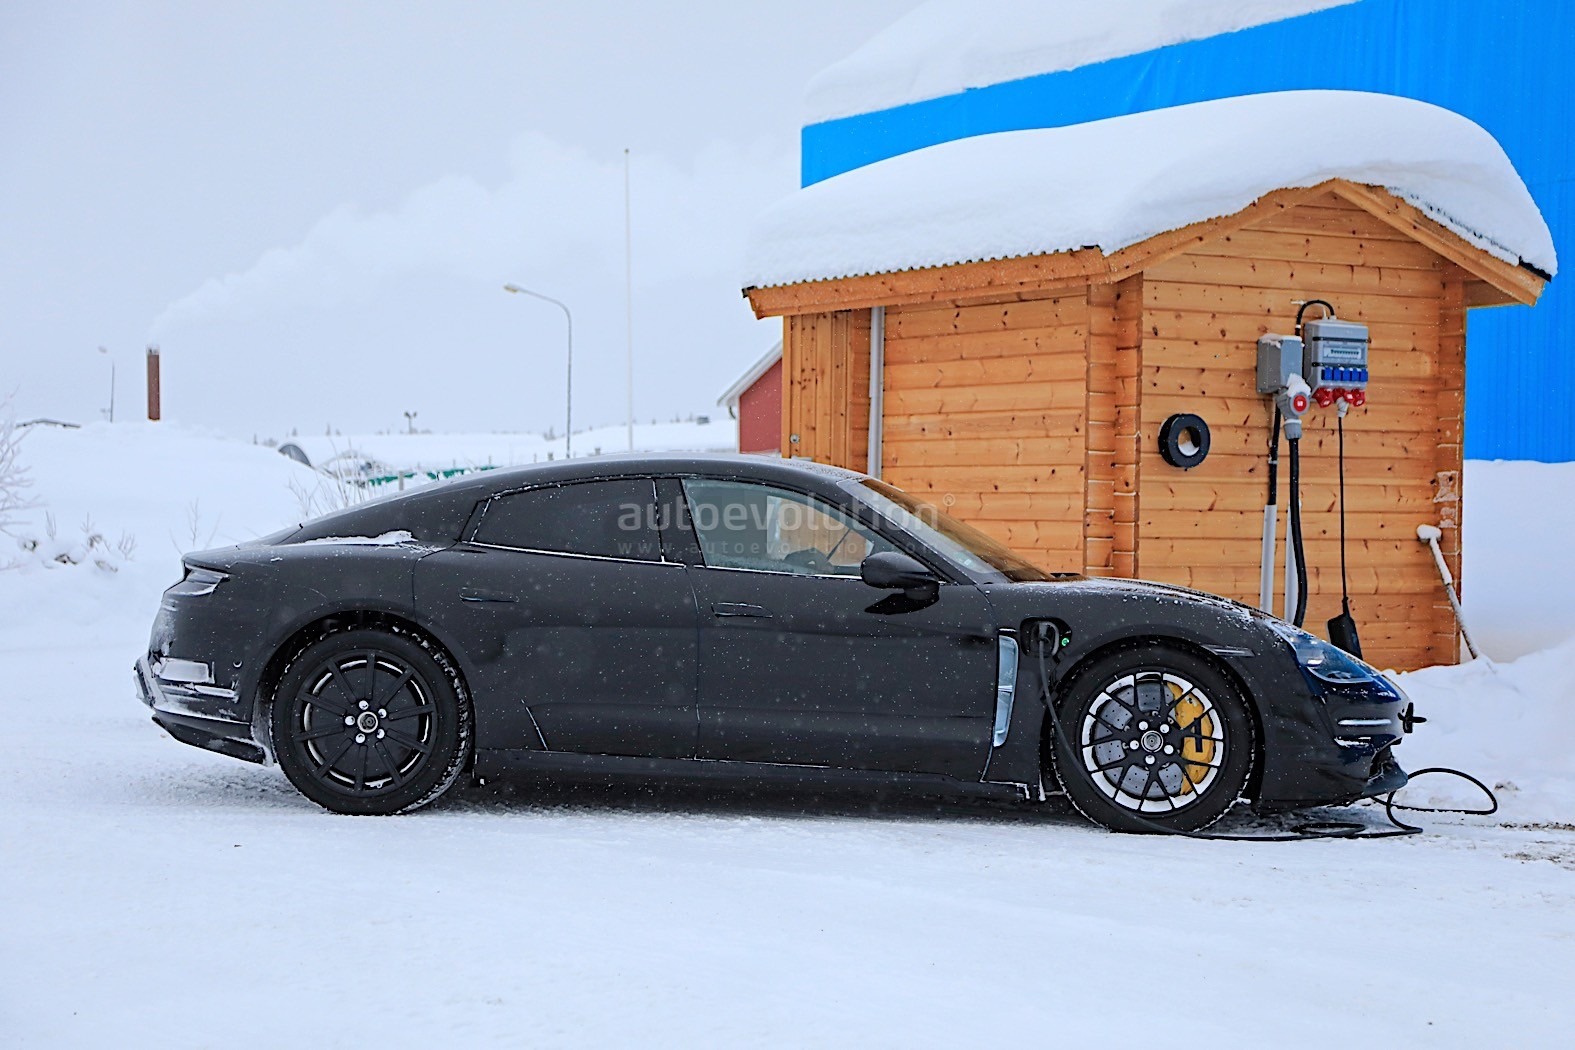 2019 - [Porsche] Taycan [J1] - Page 4 Porsche-taycan-caught-charging-paparazzis-have-a-field-day_17